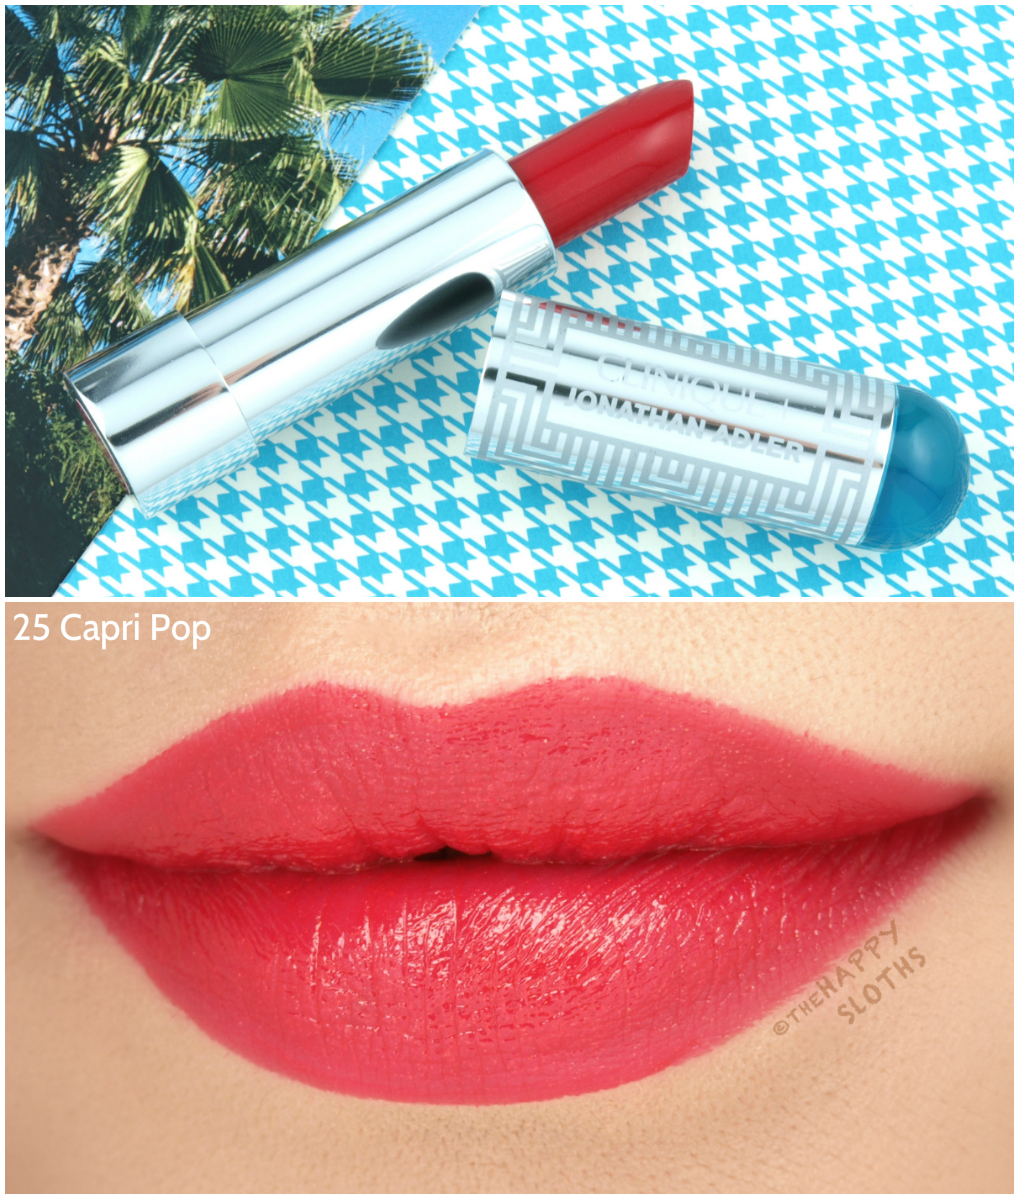 "Clinique + Jonathan Adler Collection | Lip Color + Primer Lipstick in ""25 Capri Pop"": Review and Swatches"